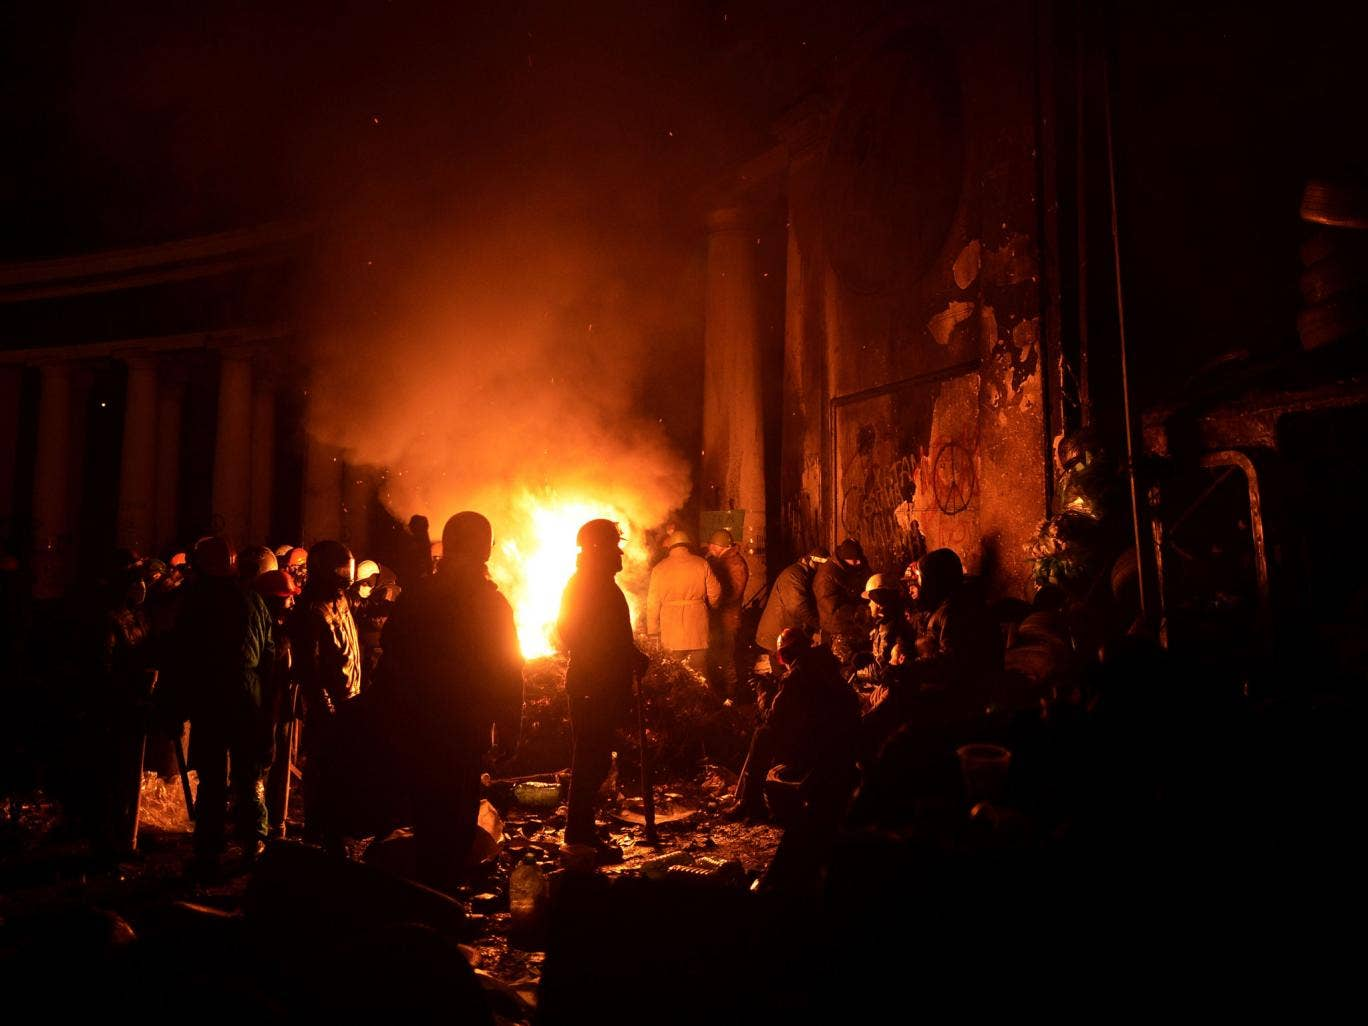 Anti-government protesters gather around a fire to get warm at a road block in Kiev on Sunday night